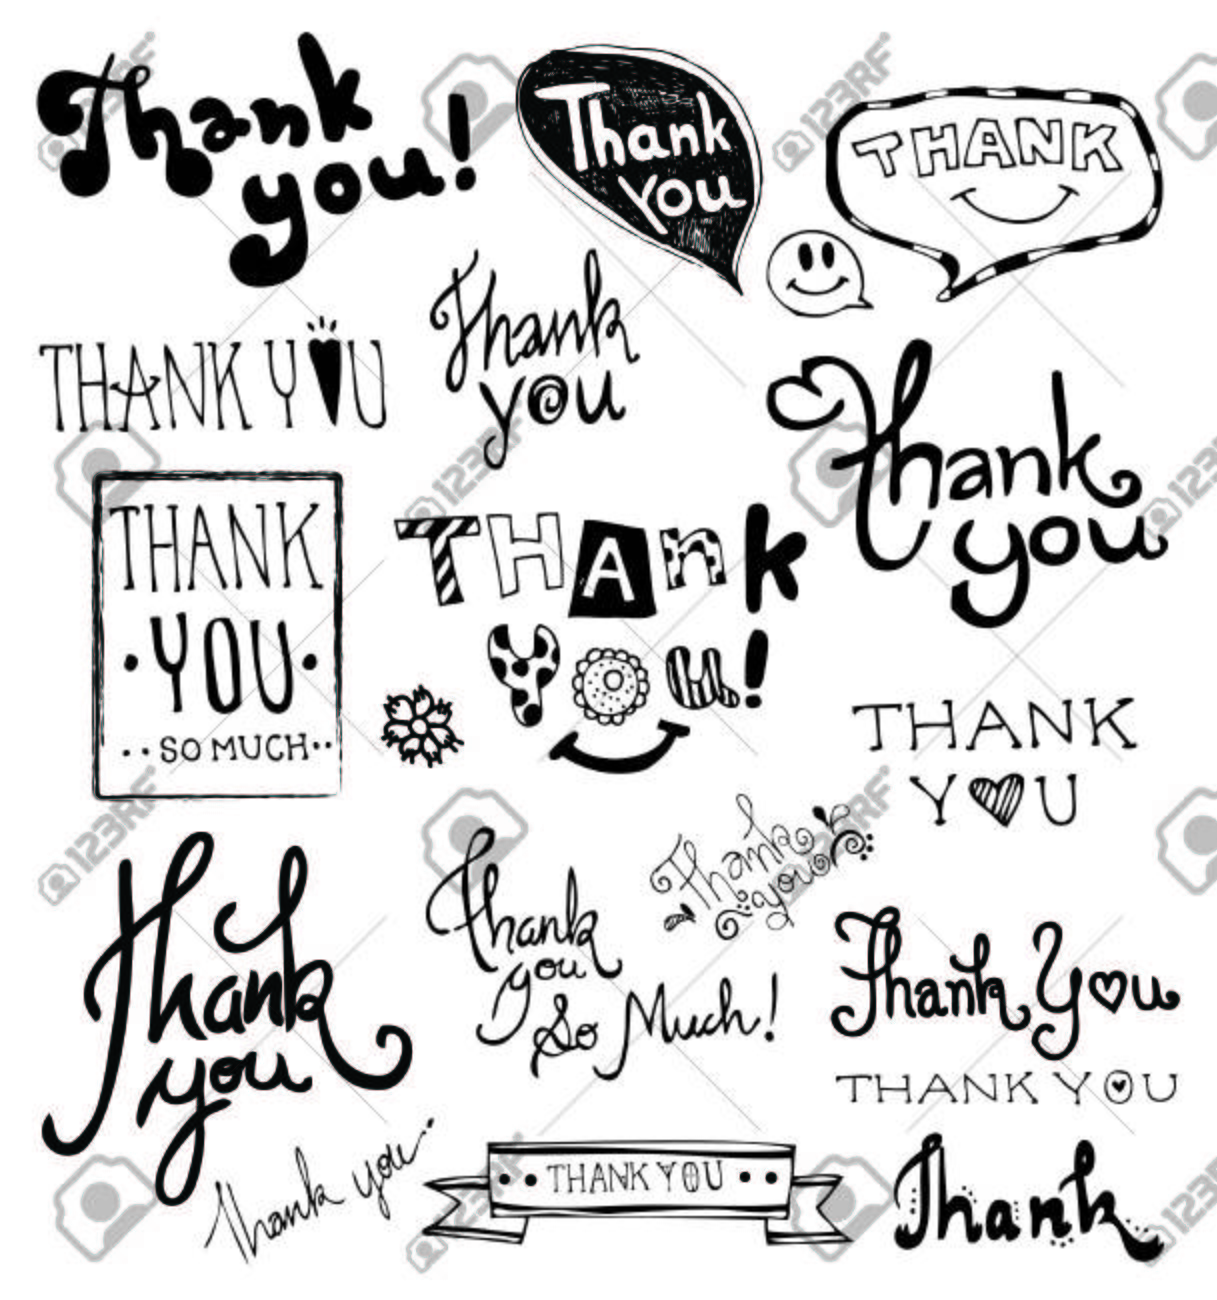 THANK YOU hand lettering. Doodles Hand Drawn vector. - 39445176